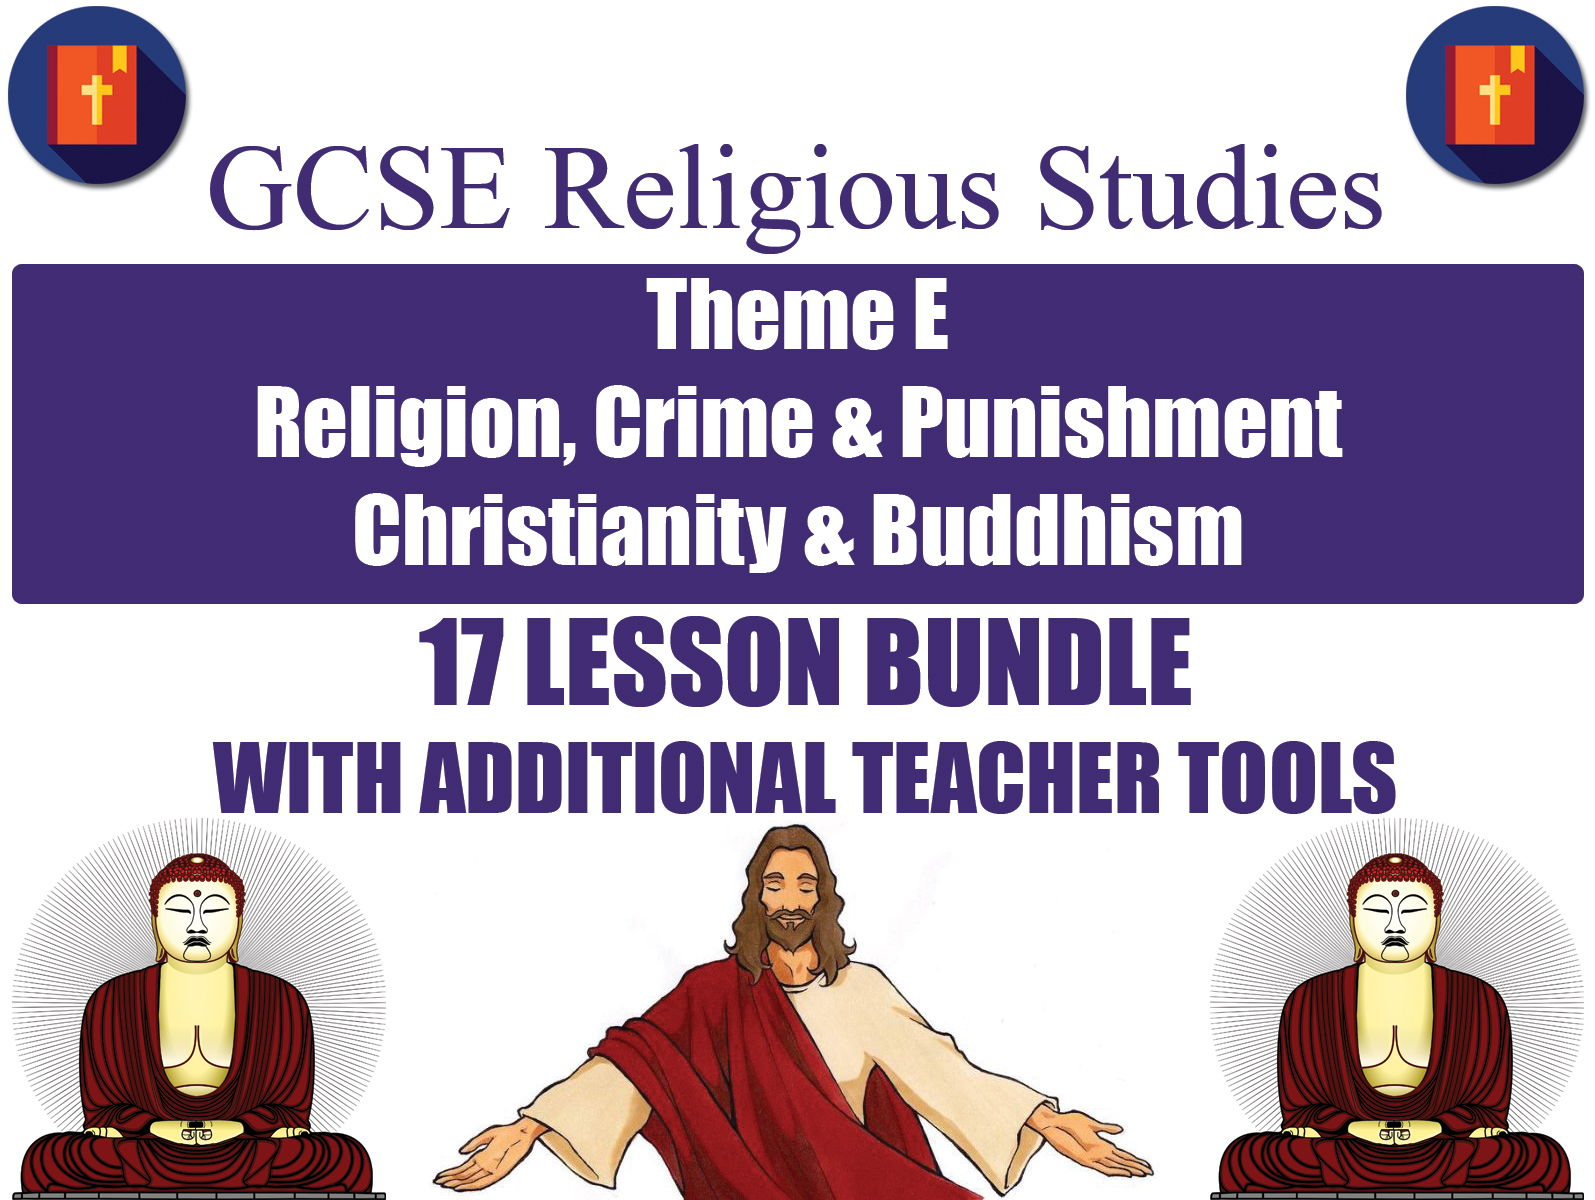 GCSE Christianity & Buddhism - Religion, Crime & Punishment (17 Lessons)